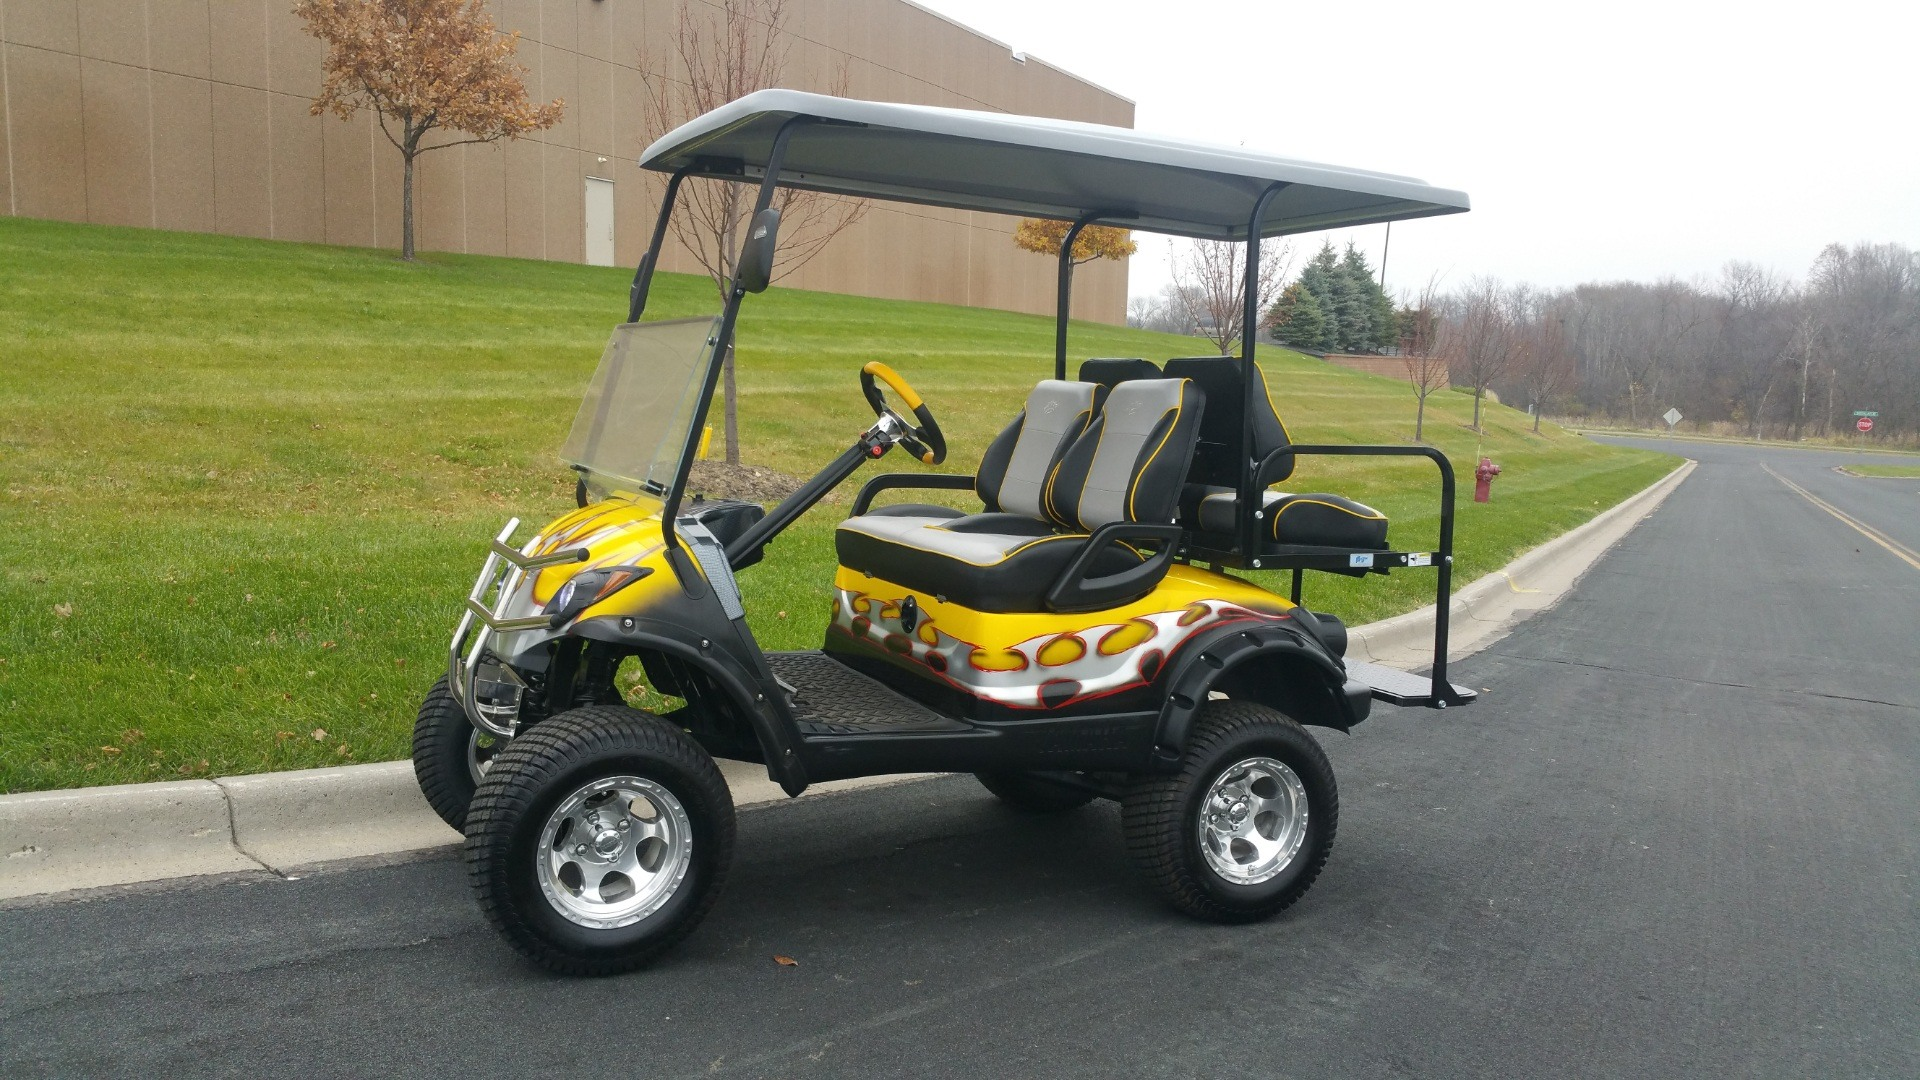 2009 Yamaha Electric Golf Cart Troubleshooting Best Electrical Drive Carts Otsego Minnesota Bto215782 Parts